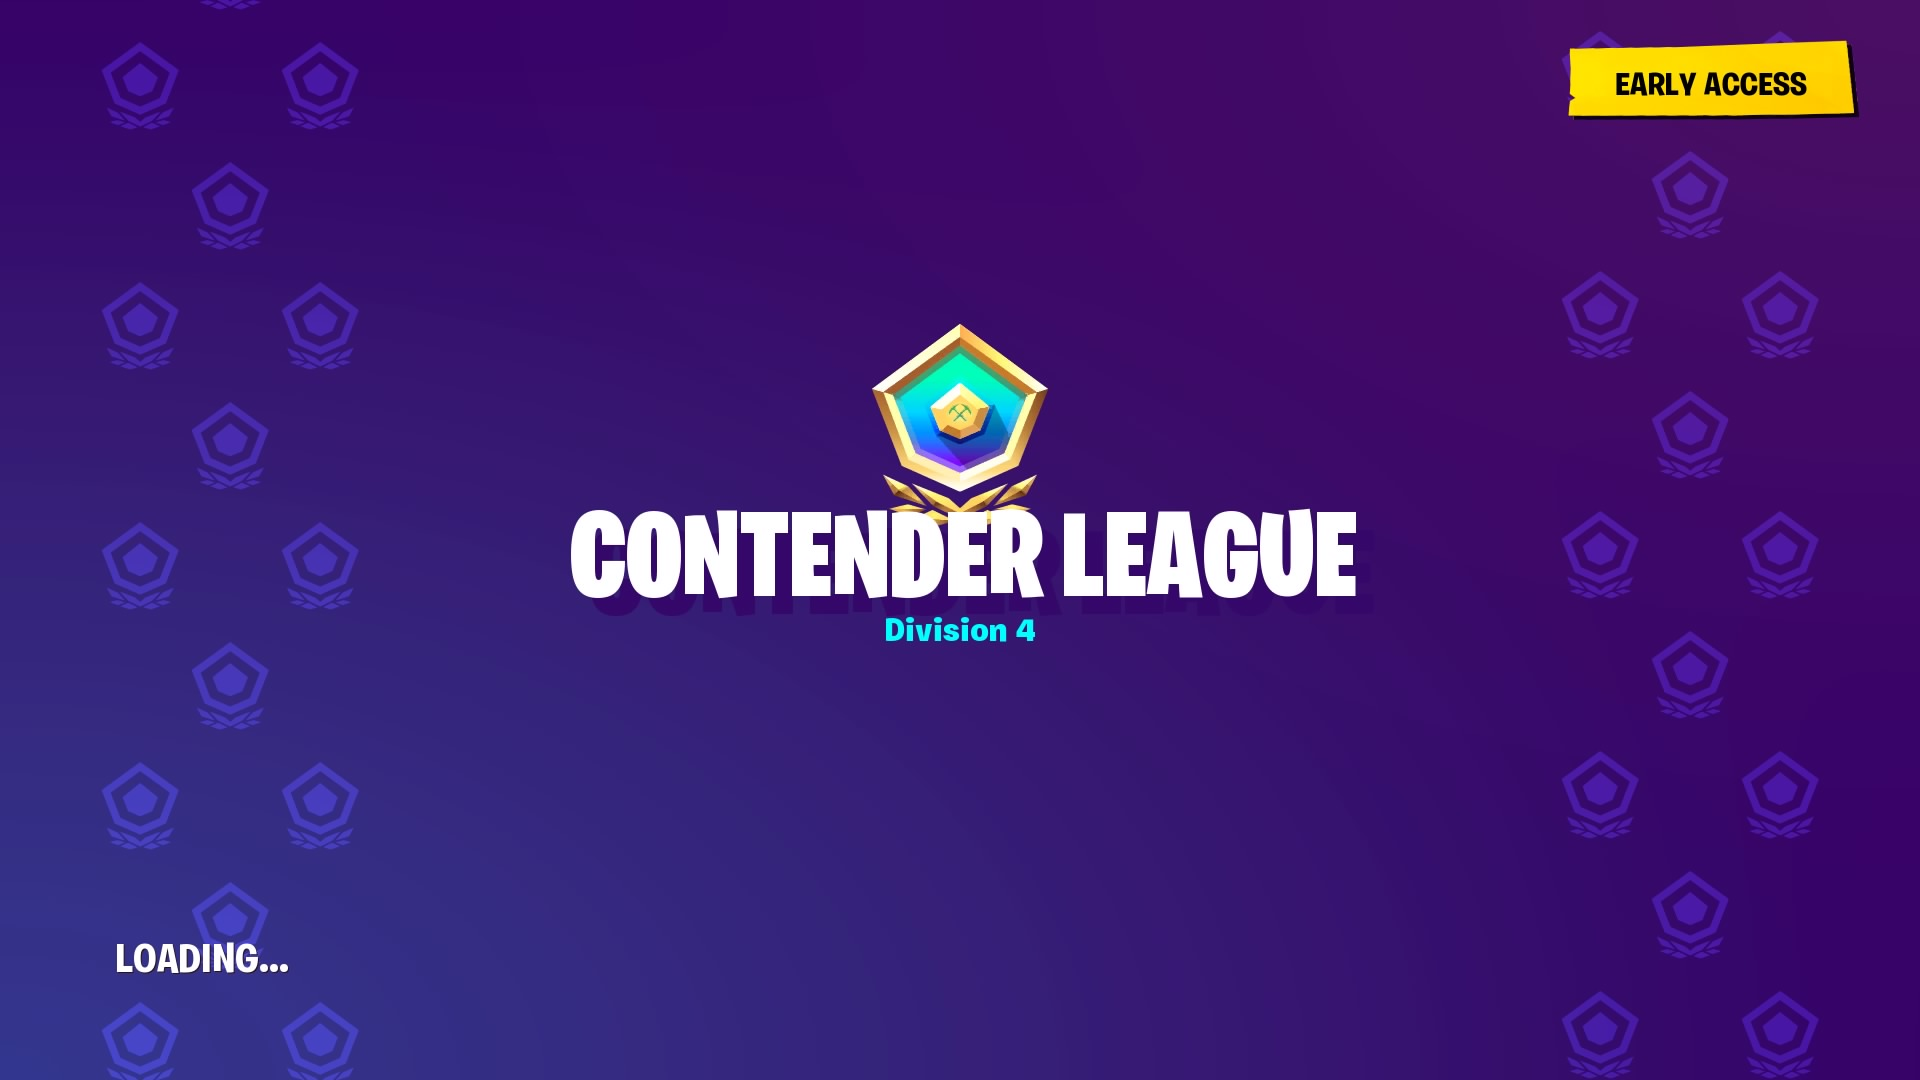 fortnite contender league wallpaper 67813